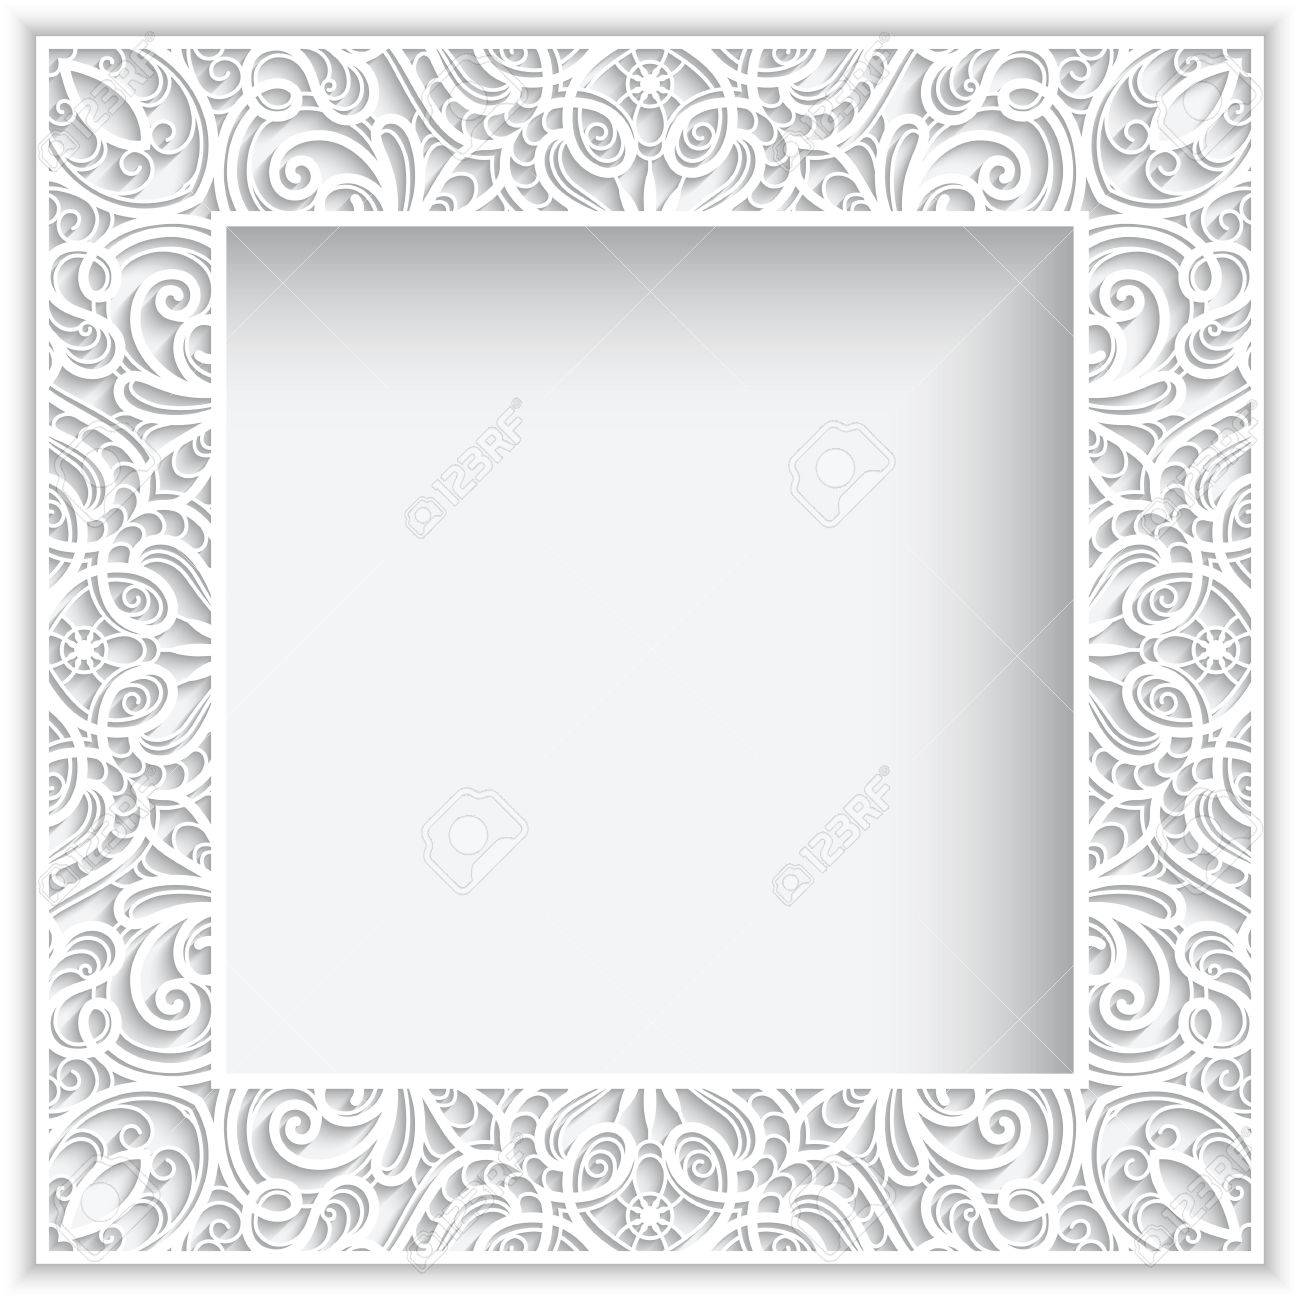 Abstract square lace frame with paper swirls, white frame, white ornamental background - 48108773